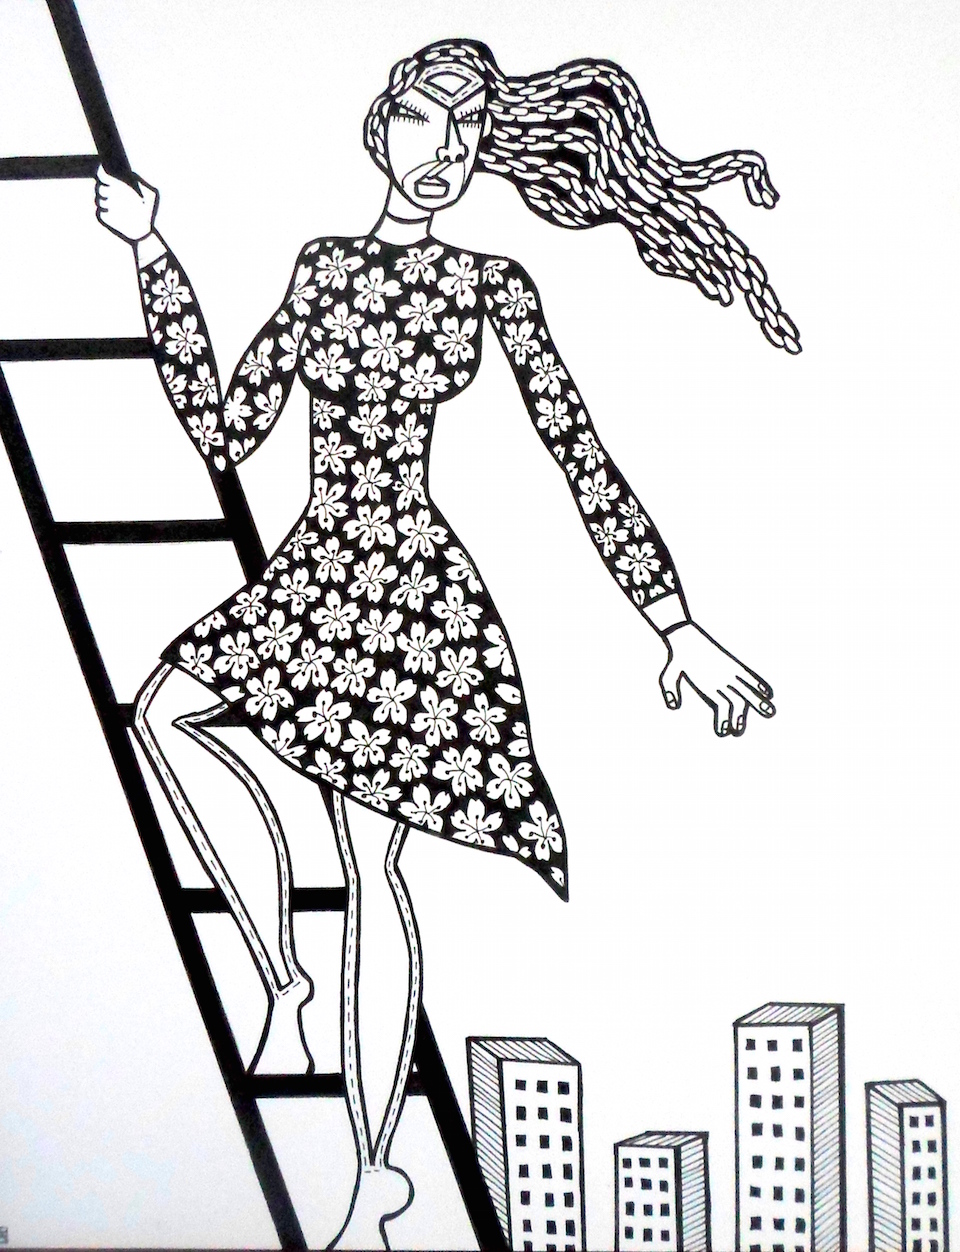 Liberated, ink on paper, 8 x 10 inches, 2015, private collection